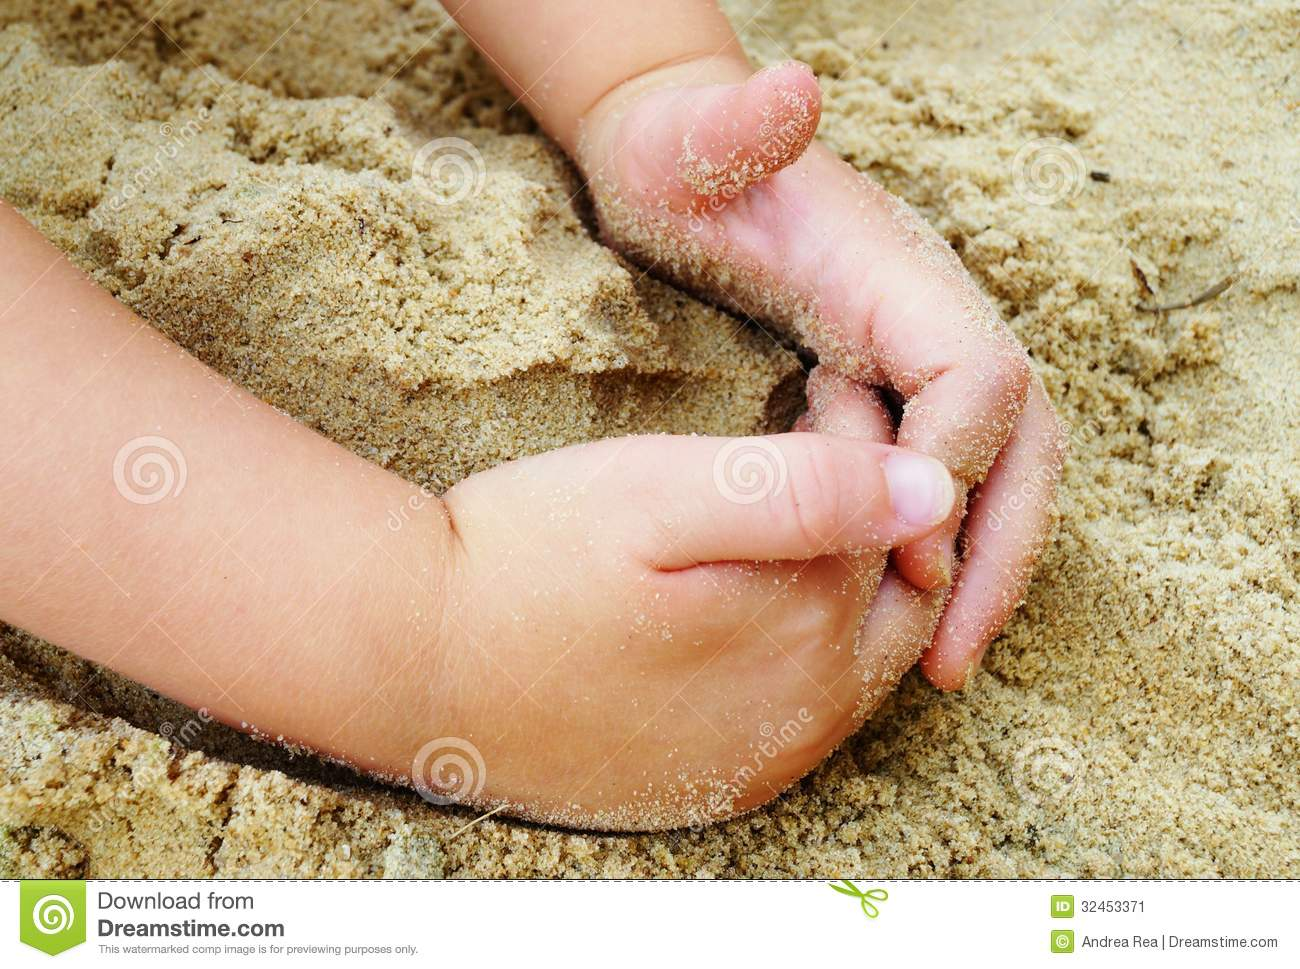 how to play cowgirl in the sand